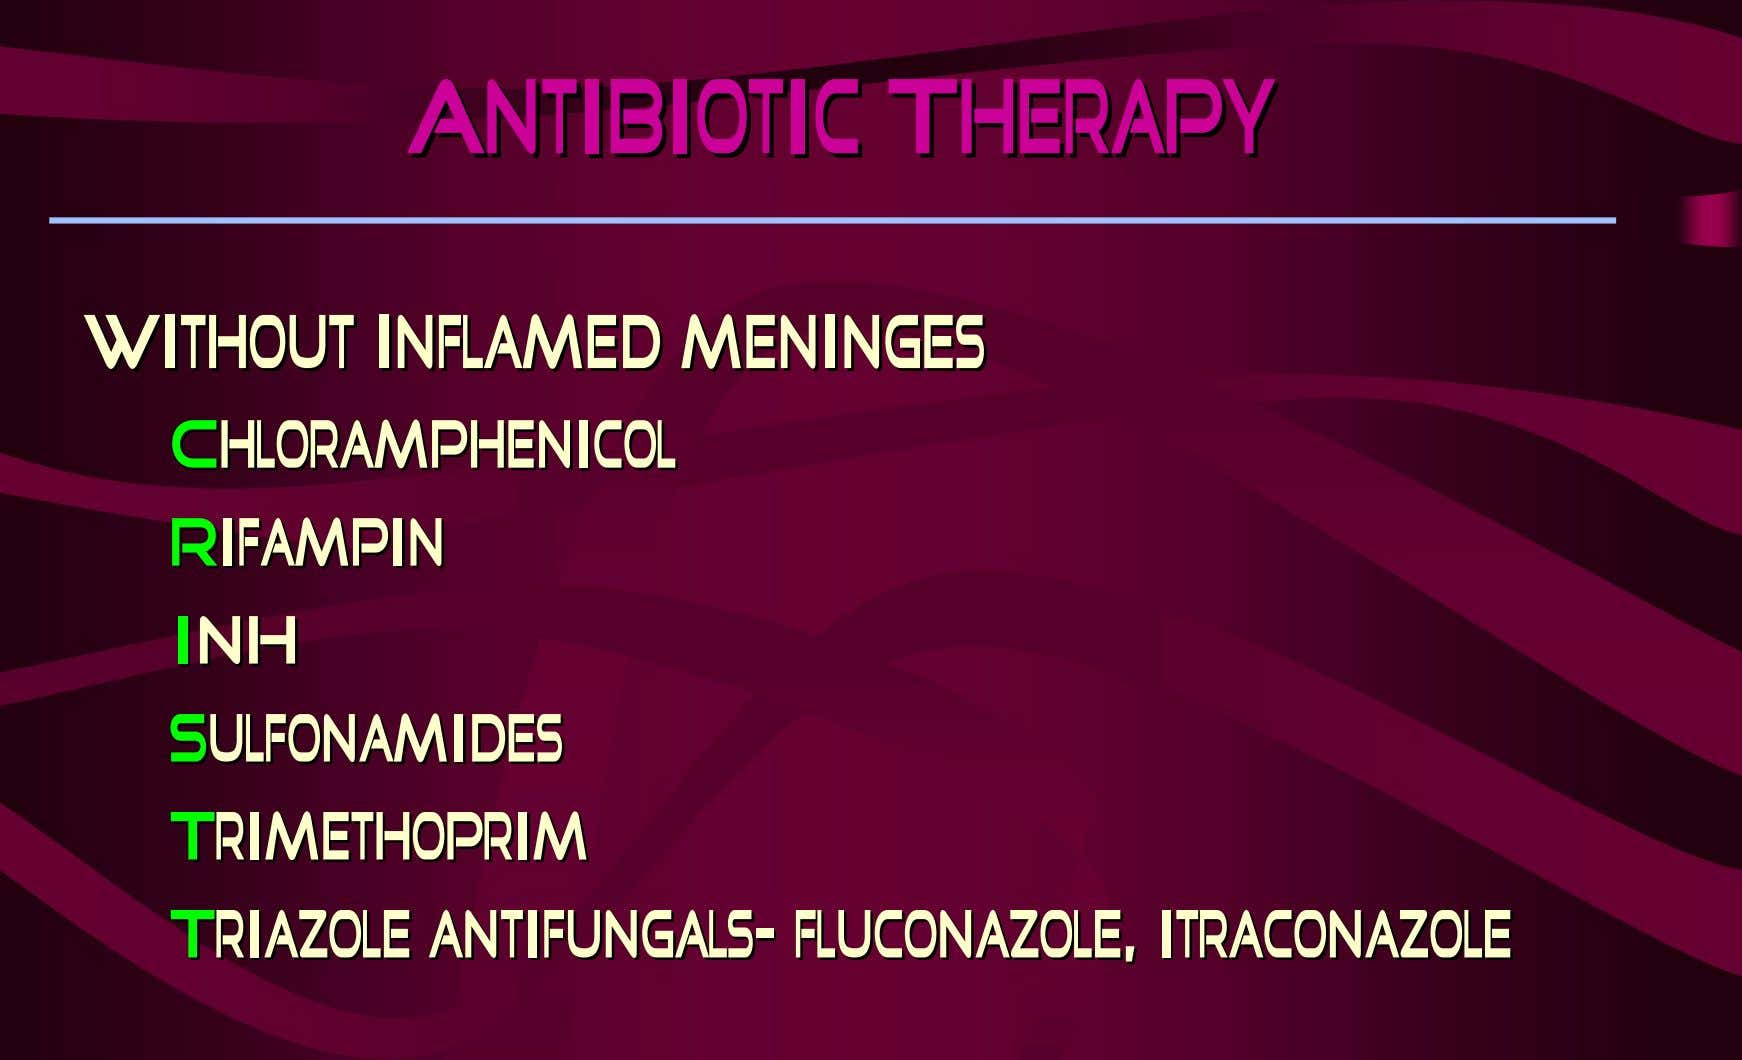 AntibioticAntibiotic TherapyTherapy WithoutWithout inflamedinflamed meningesmeninges CChloramphenicolhloramphenicol